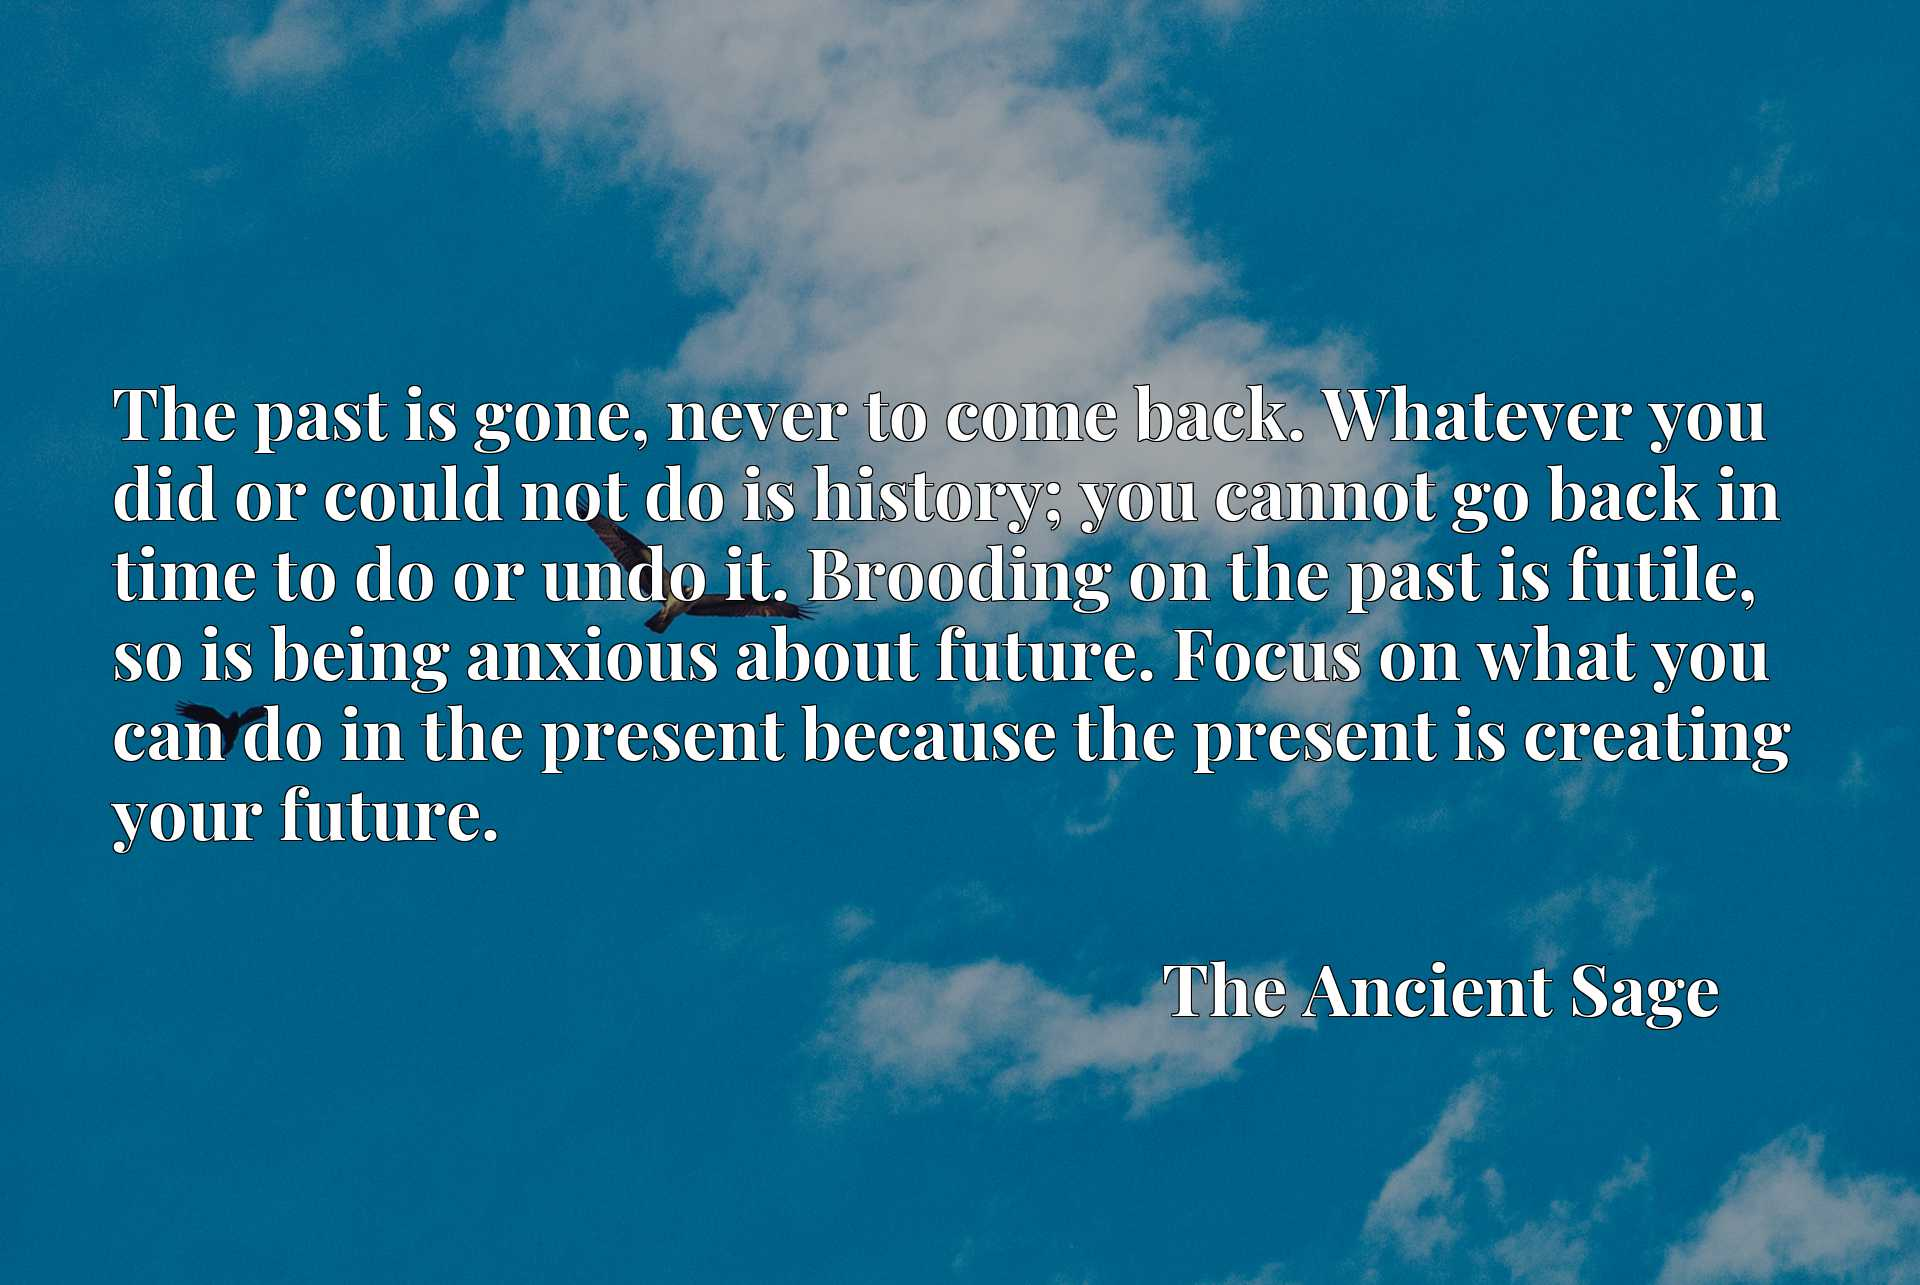 The past is gone, never to come back. Whatever you did or could not do is history; you cannot go back in time to do or undo it. Brooding on the past is futile, so is being anxious about future. Focus on what you can do in the present because the present is creating your future.